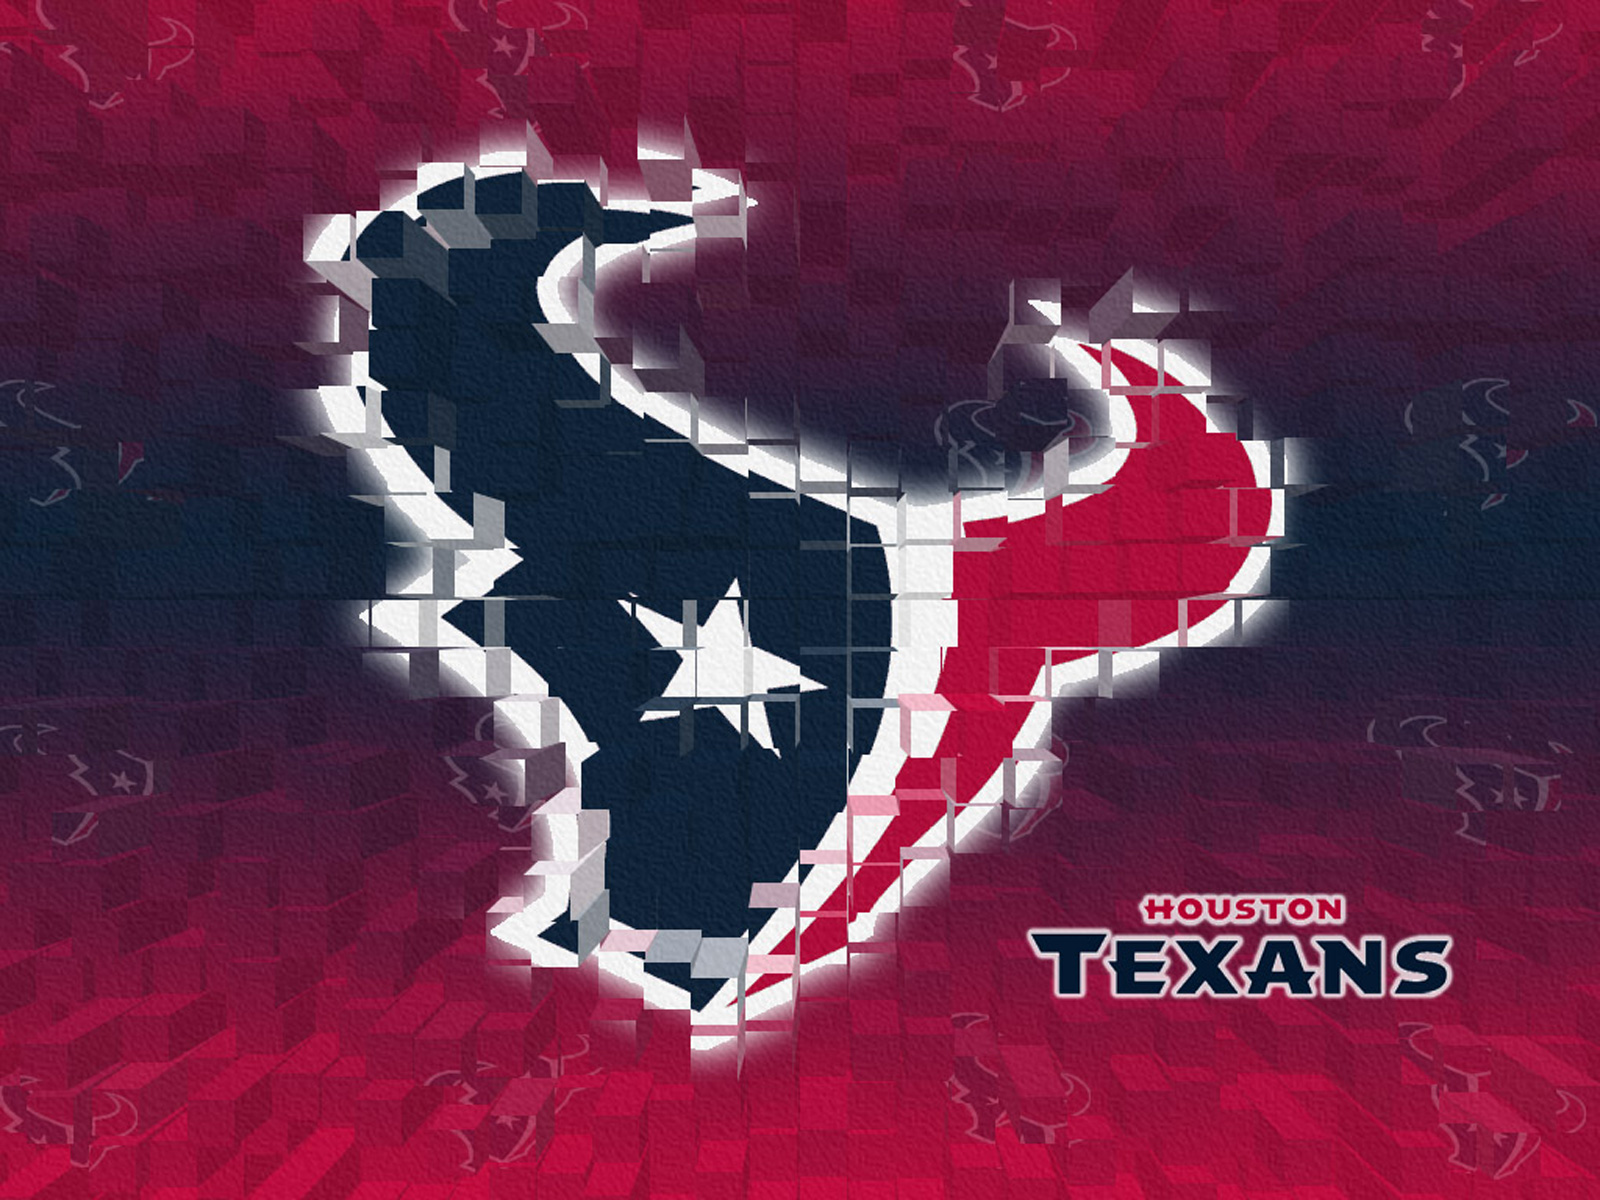 http://1.bp.blogspot.com/_SPY5-z18DBU/TTdg-4zsJlI/AAAAAAAAAbE/02vtQkXCsqk/s1600/houston_texans_3d_wallpaper_1600x1200.jpeg